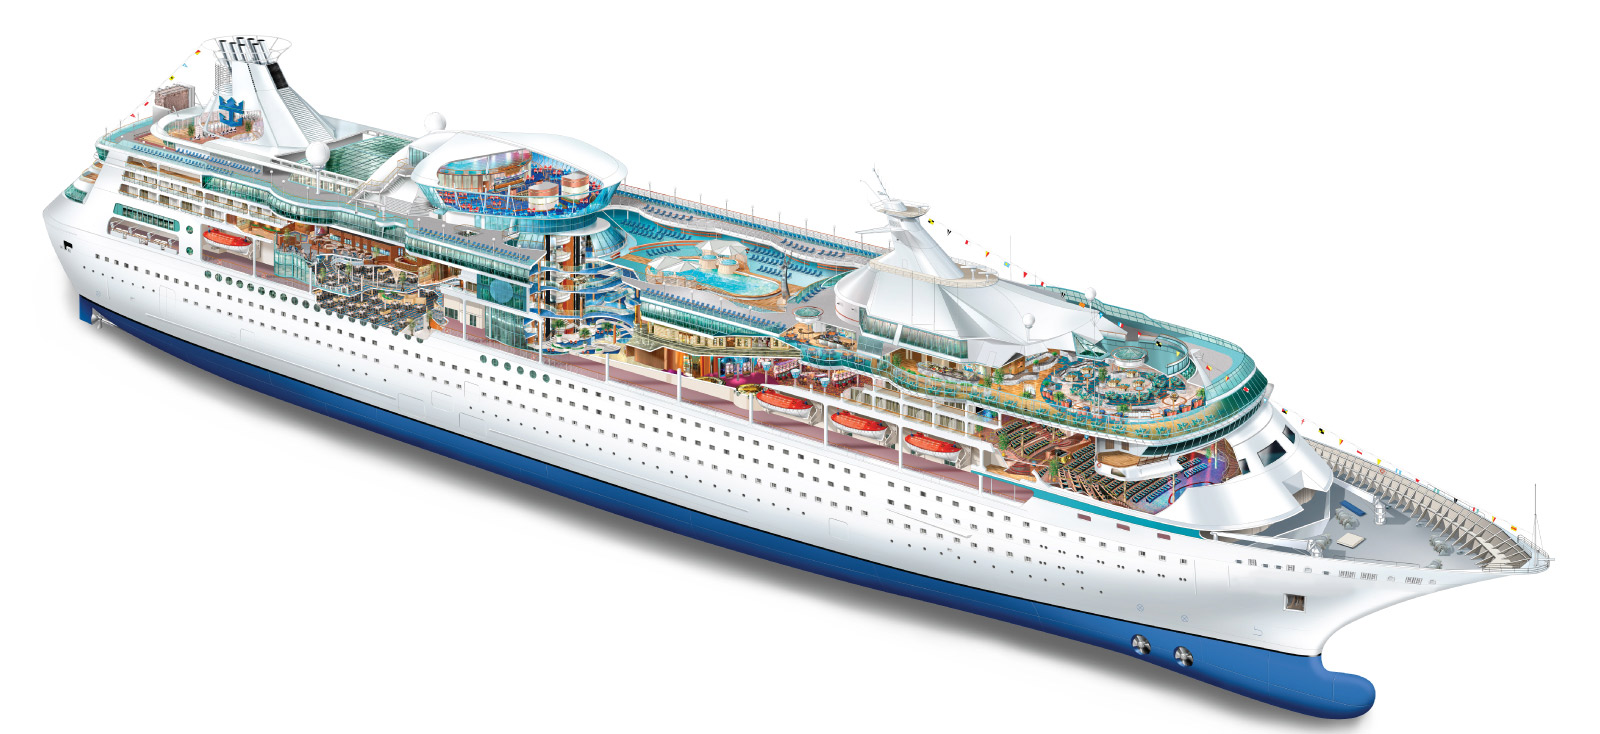 Vision of the Seas.